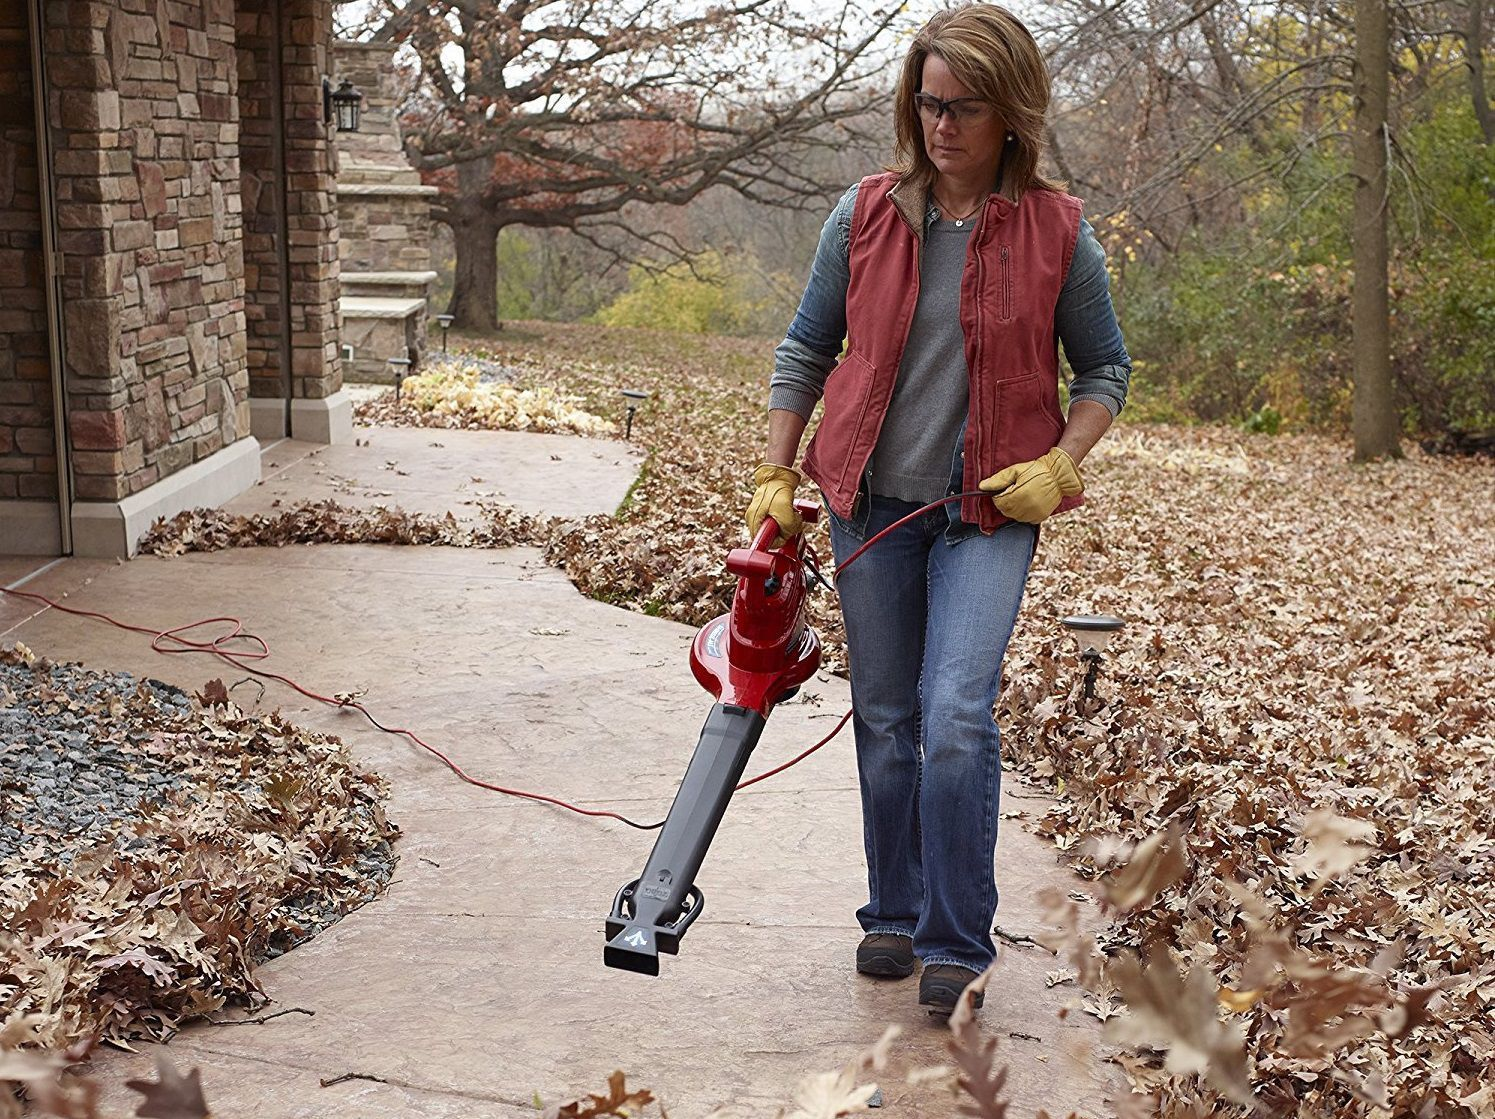 The 4 Best Leaf Blowers Money Can Buy Leaf Blowers Electric Leaf Blowers Leaf Blower